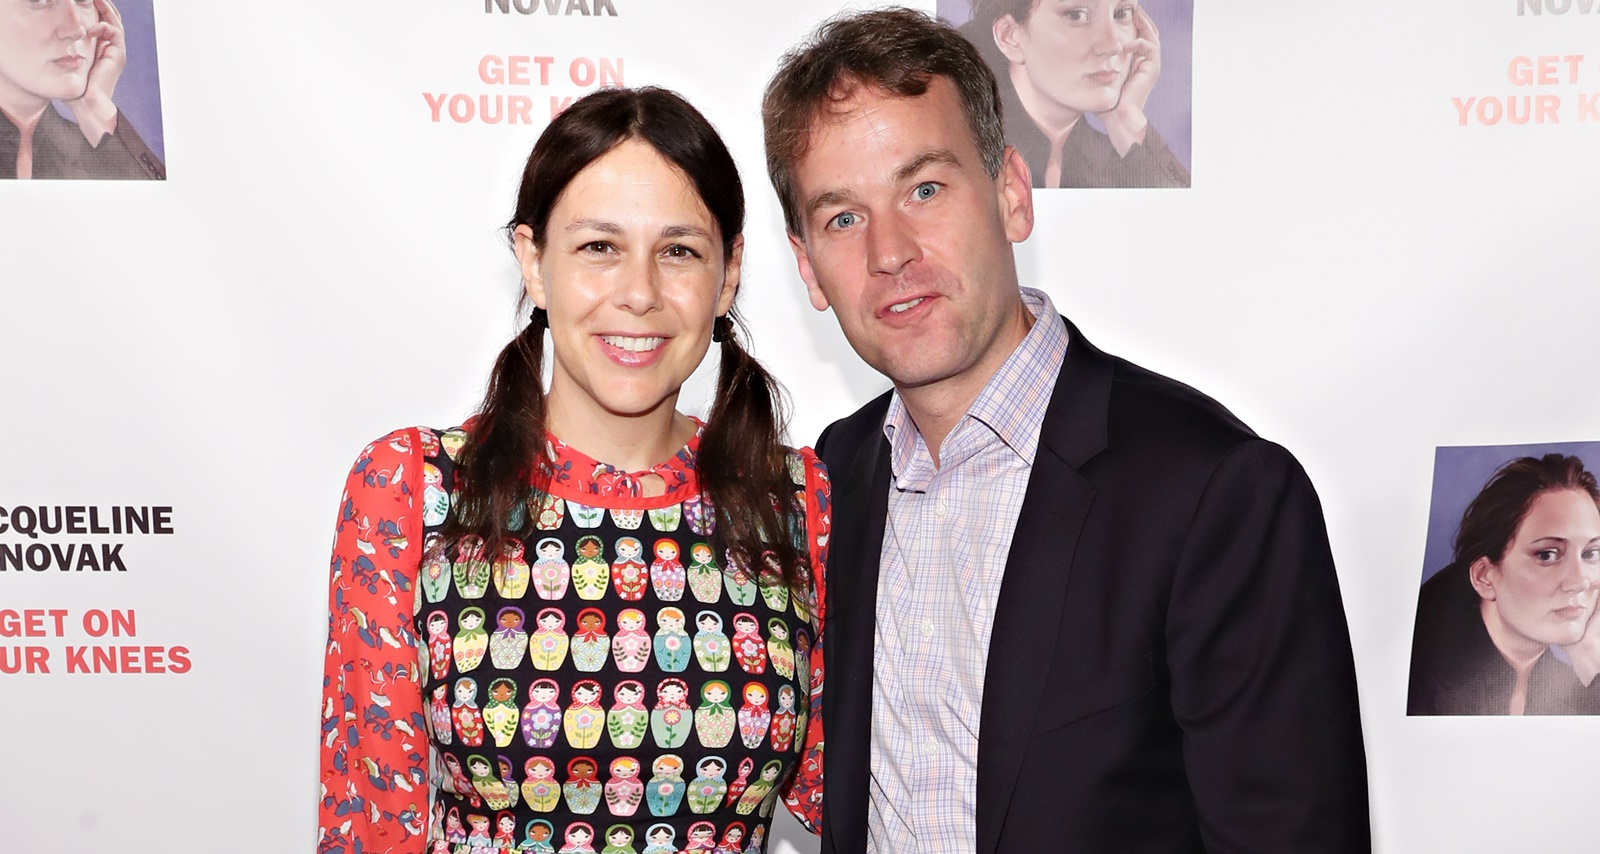 Mike Birbiglia's Wife: Jen Stein Wiki, Family and Facts About the Poet and Producer